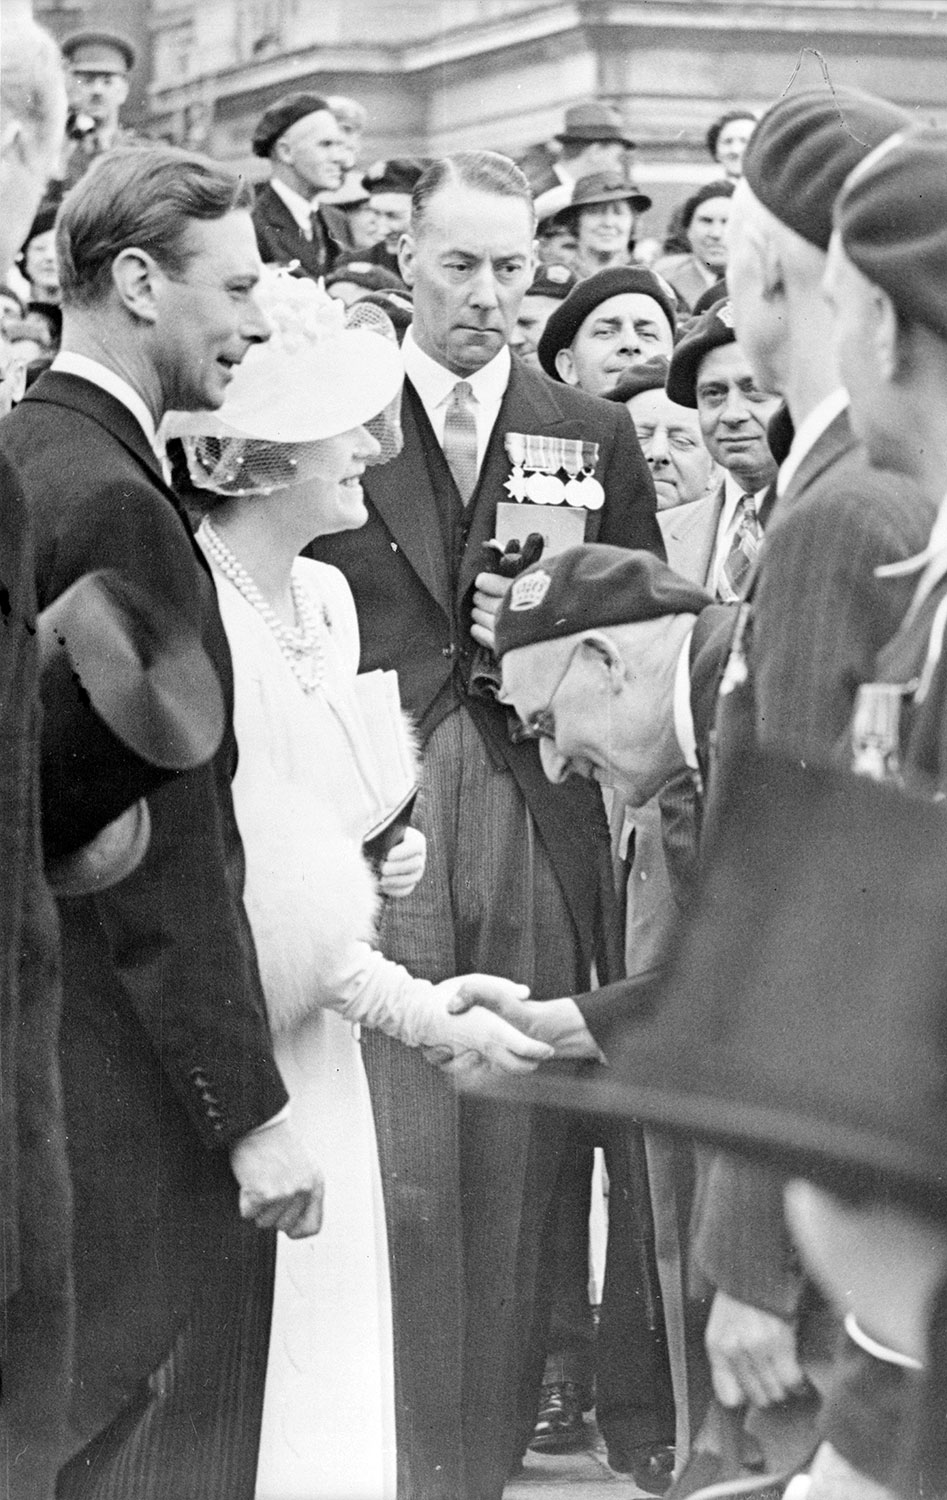 View enlarged image of King George VI and Queen Elizabeth